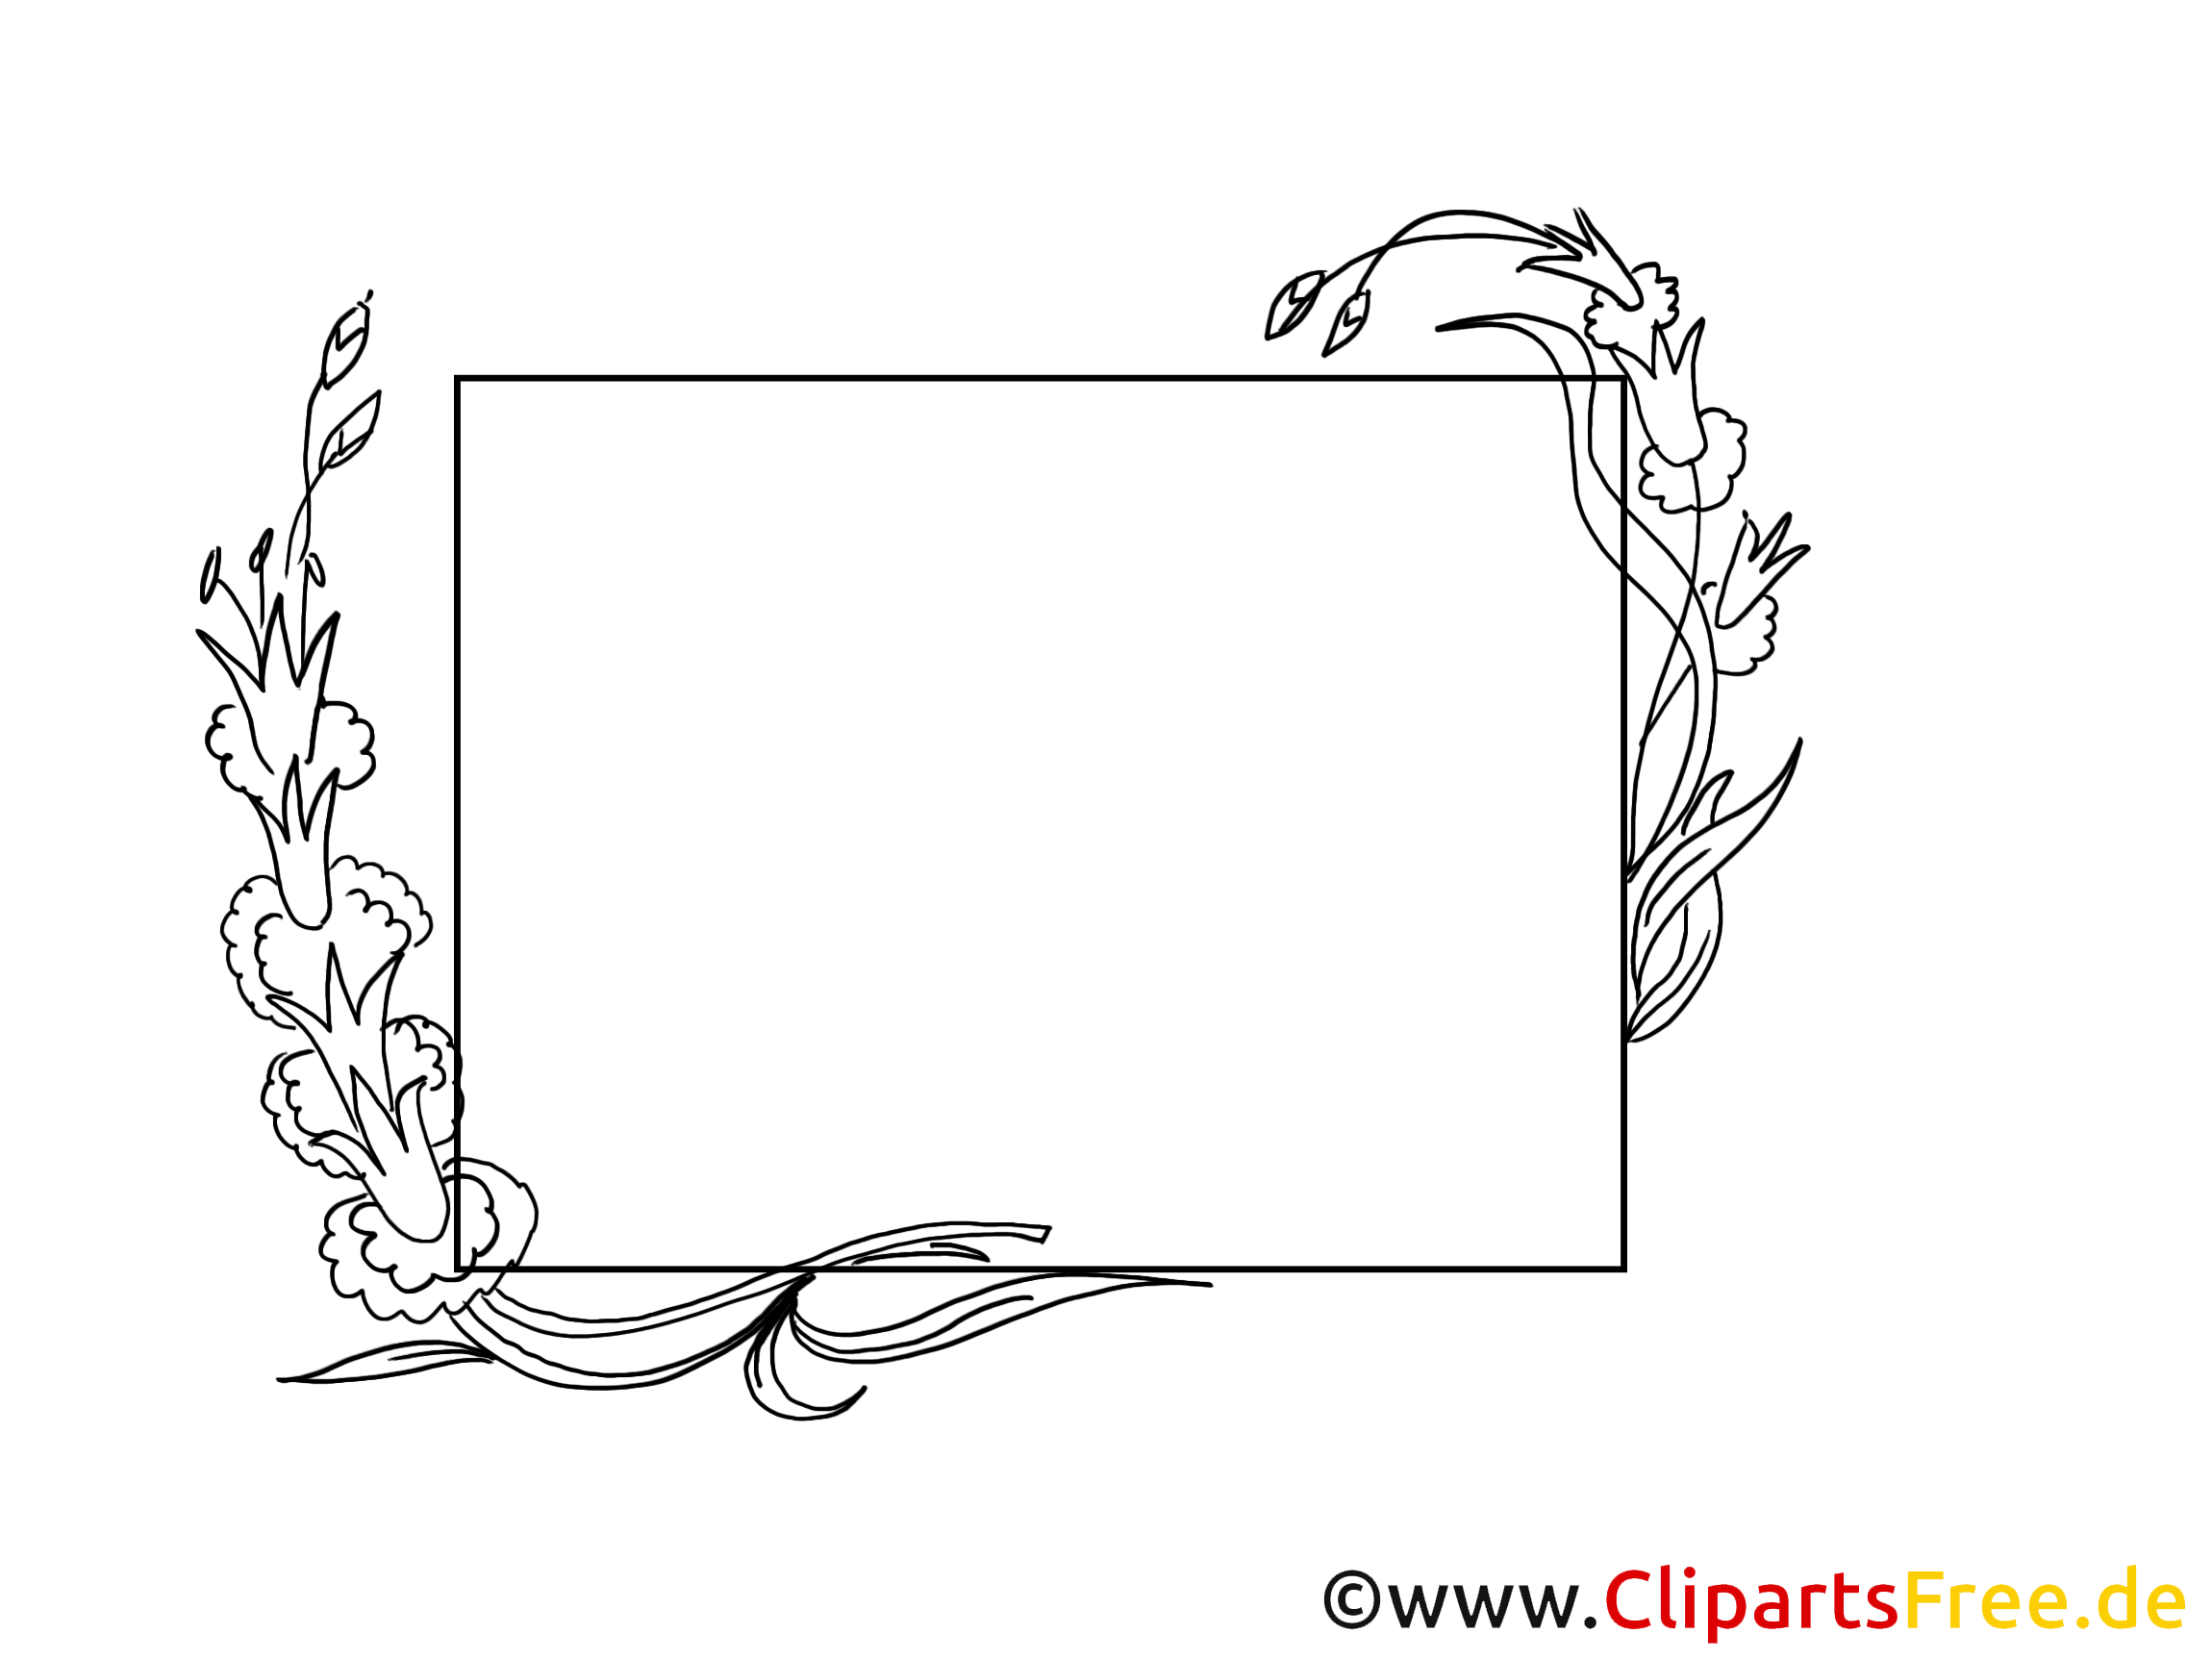 coloriage dessin cadre t l charger cadres dessin picture image graphic clip art. Black Bedroom Furniture Sets. Home Design Ideas